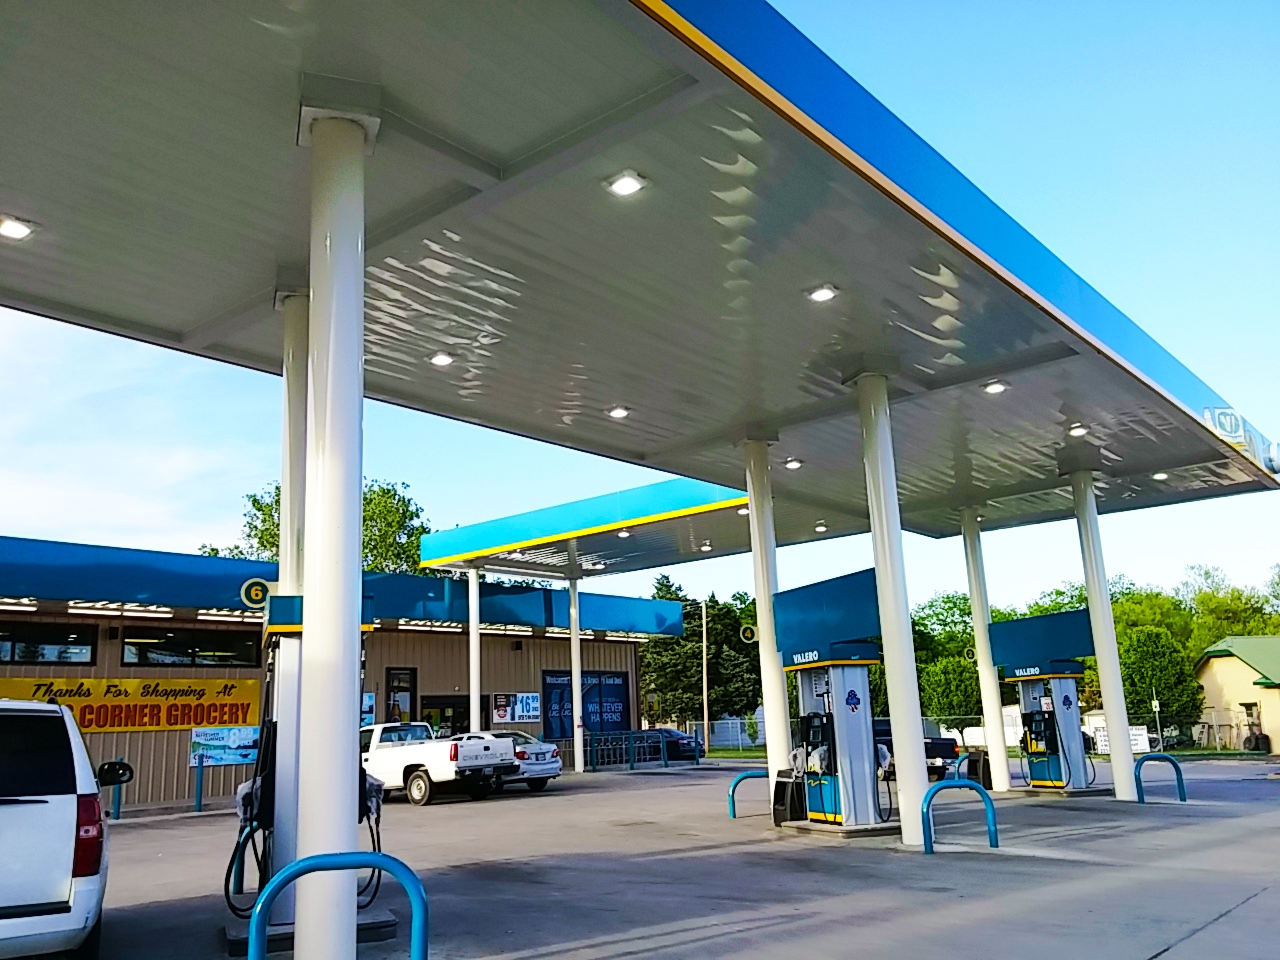 valero gas station angel builds dallas remodeling. Black Bedroom Furniture Sets. Home Design Ideas